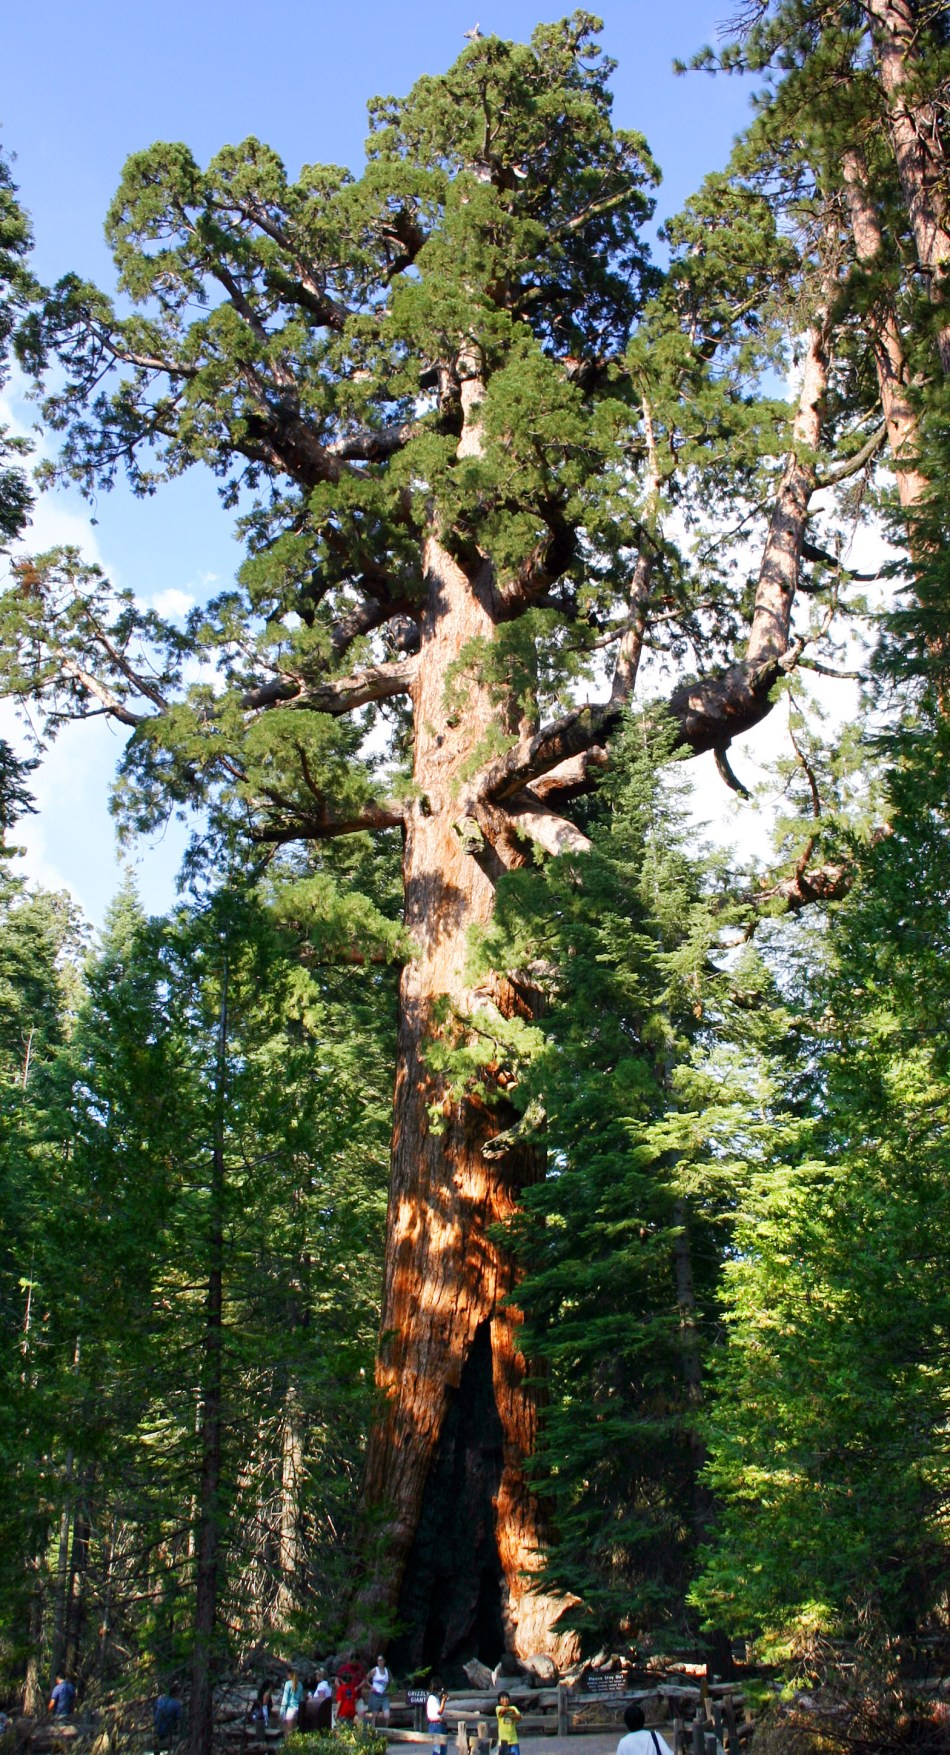 Giant sequoia in the Mariposa Grove of Yosemite National Park.